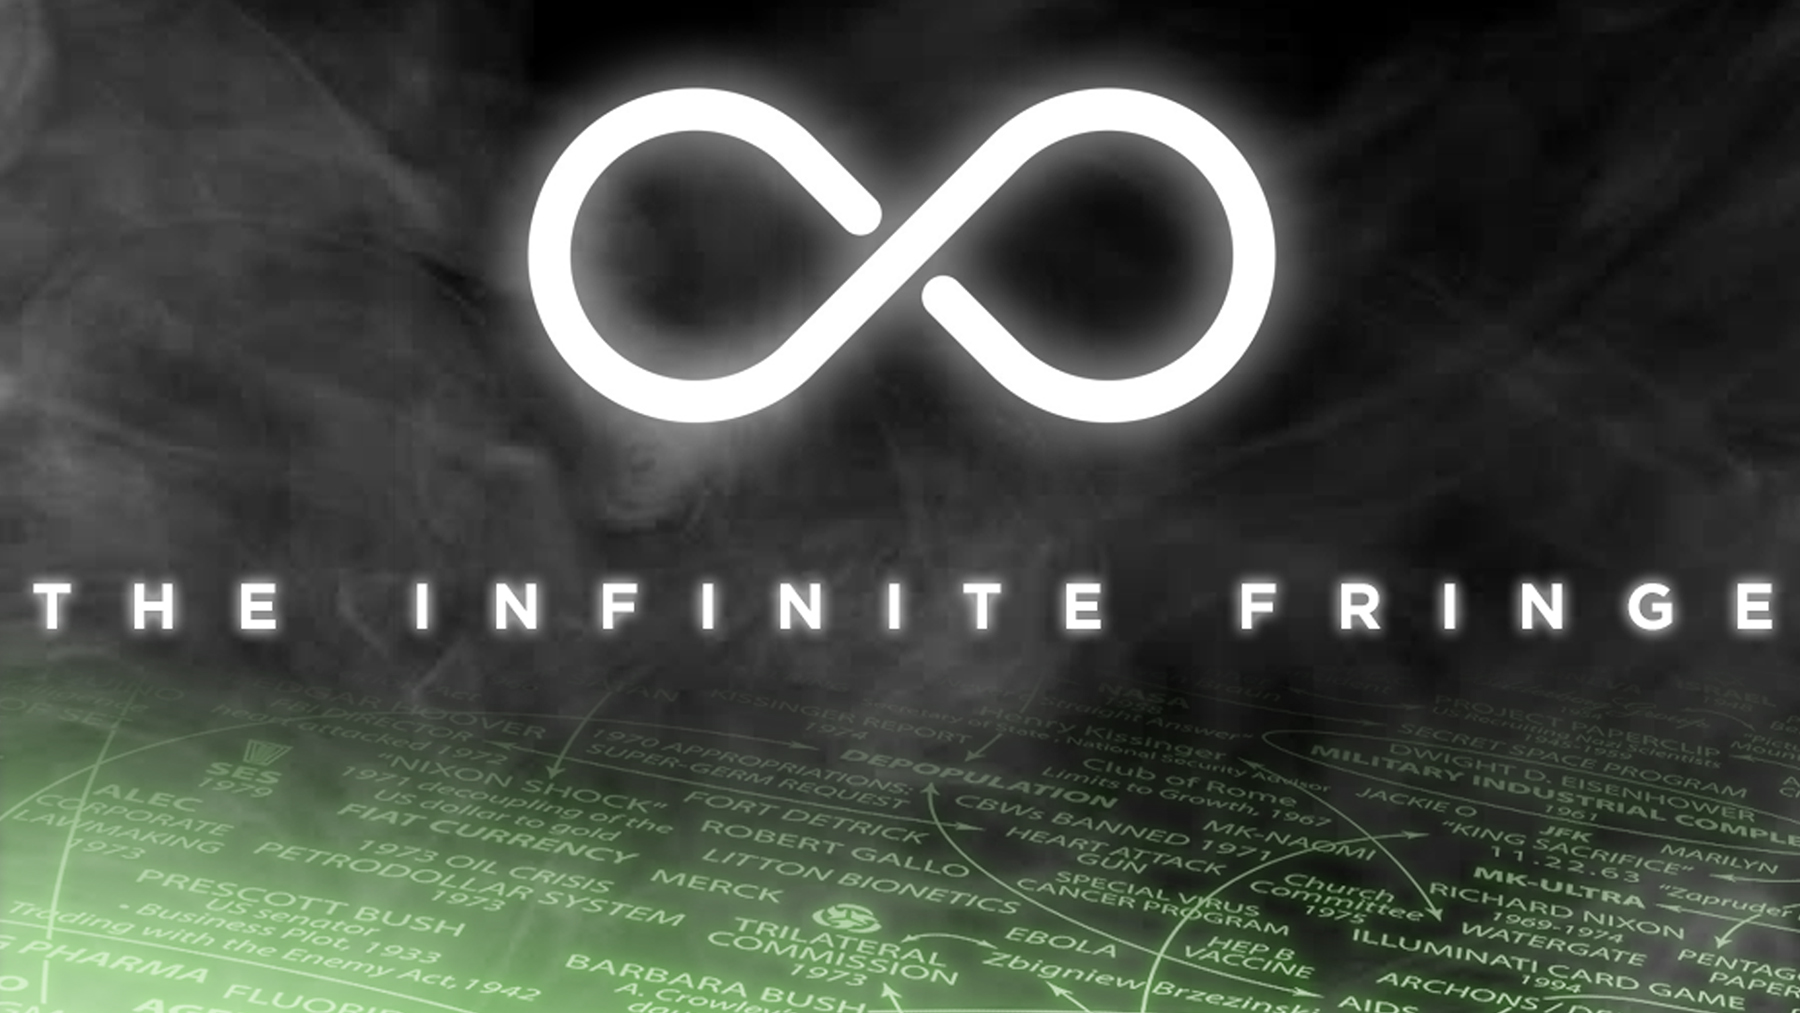 The Infinite Fringe